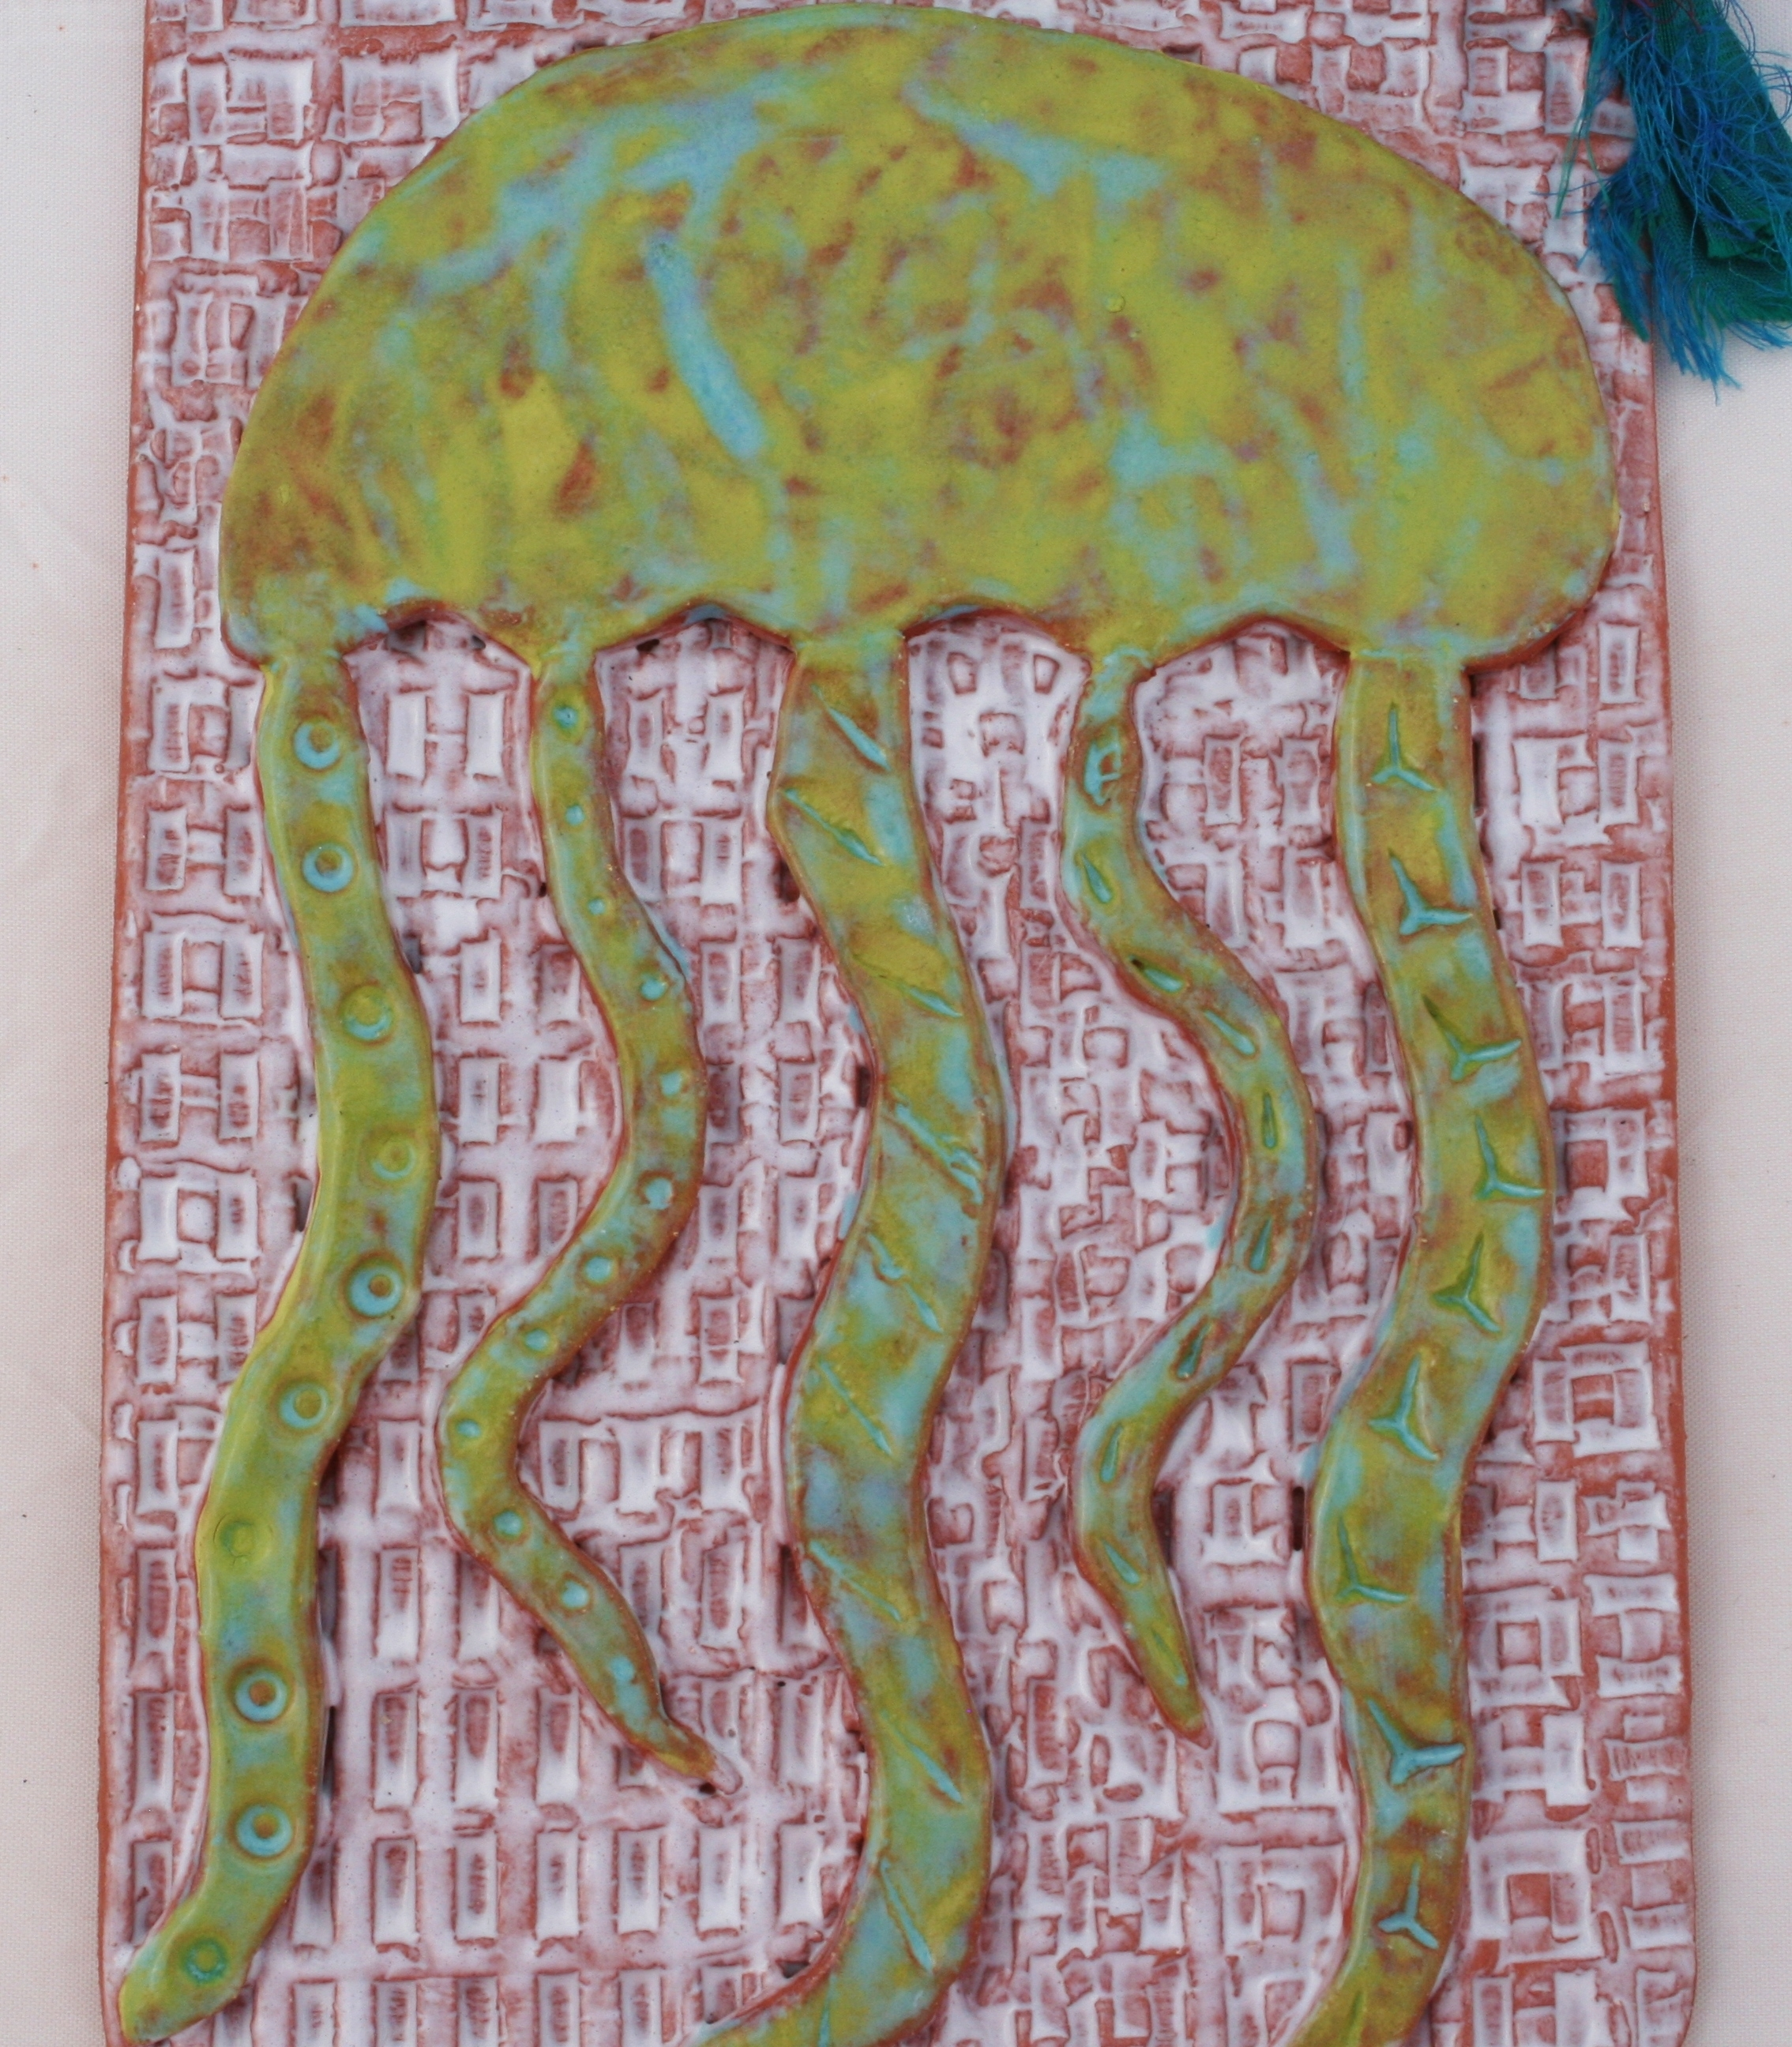 Ceramic Wall Art Tile Jellyfish Intended For Most Recently Released Ceramic Wall Art (View 6 of 20)